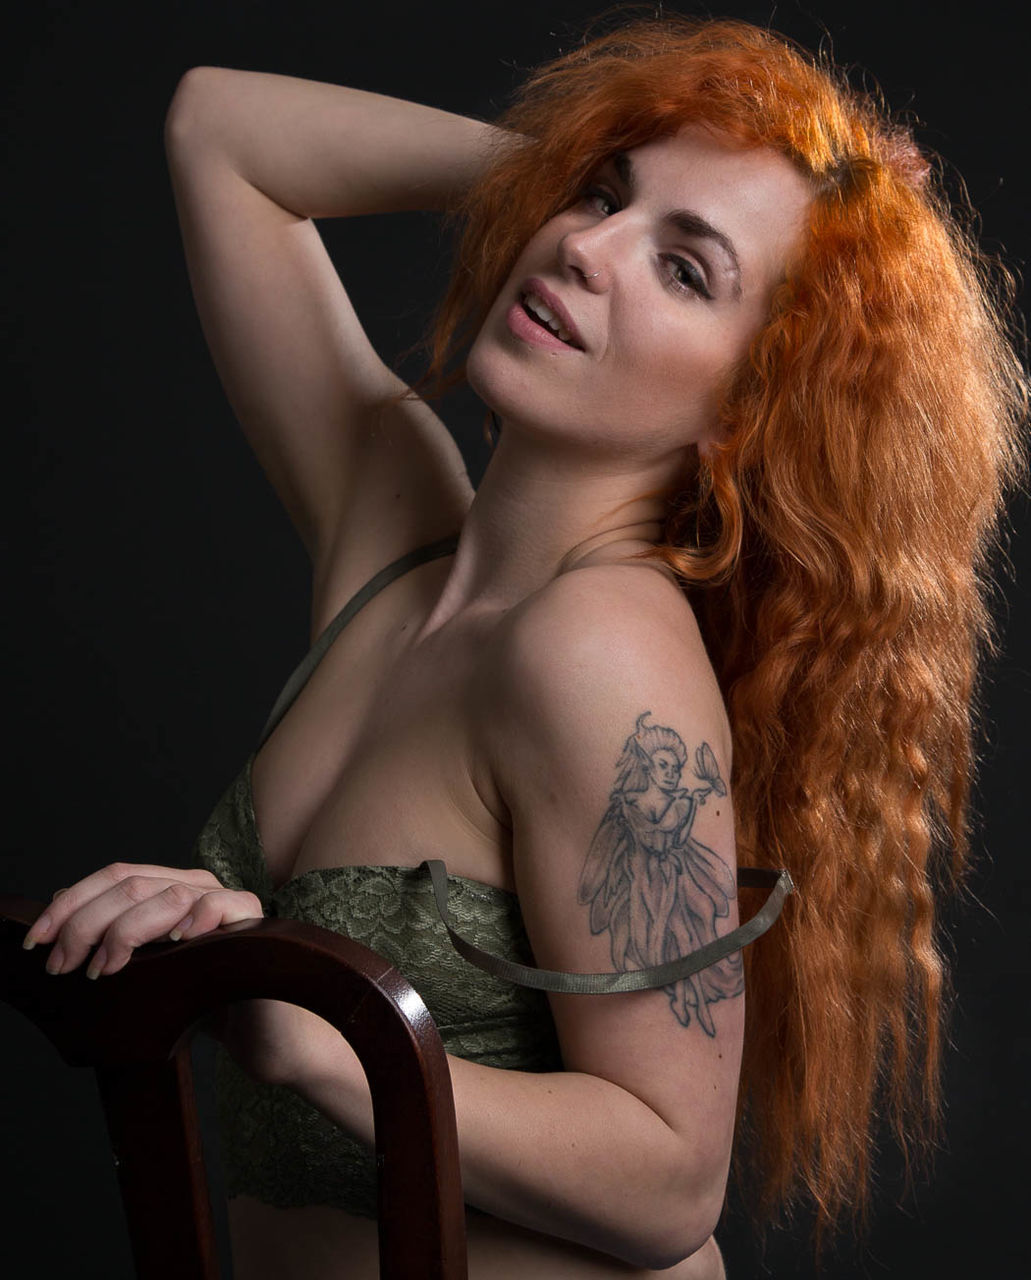 redhead, studio shot, young adult, beautiful woman, one person, young women, real people, black background, shirtless, lifestyles, portrait, medium-length hair, looking at camera, beauty, indoors, close-up, people